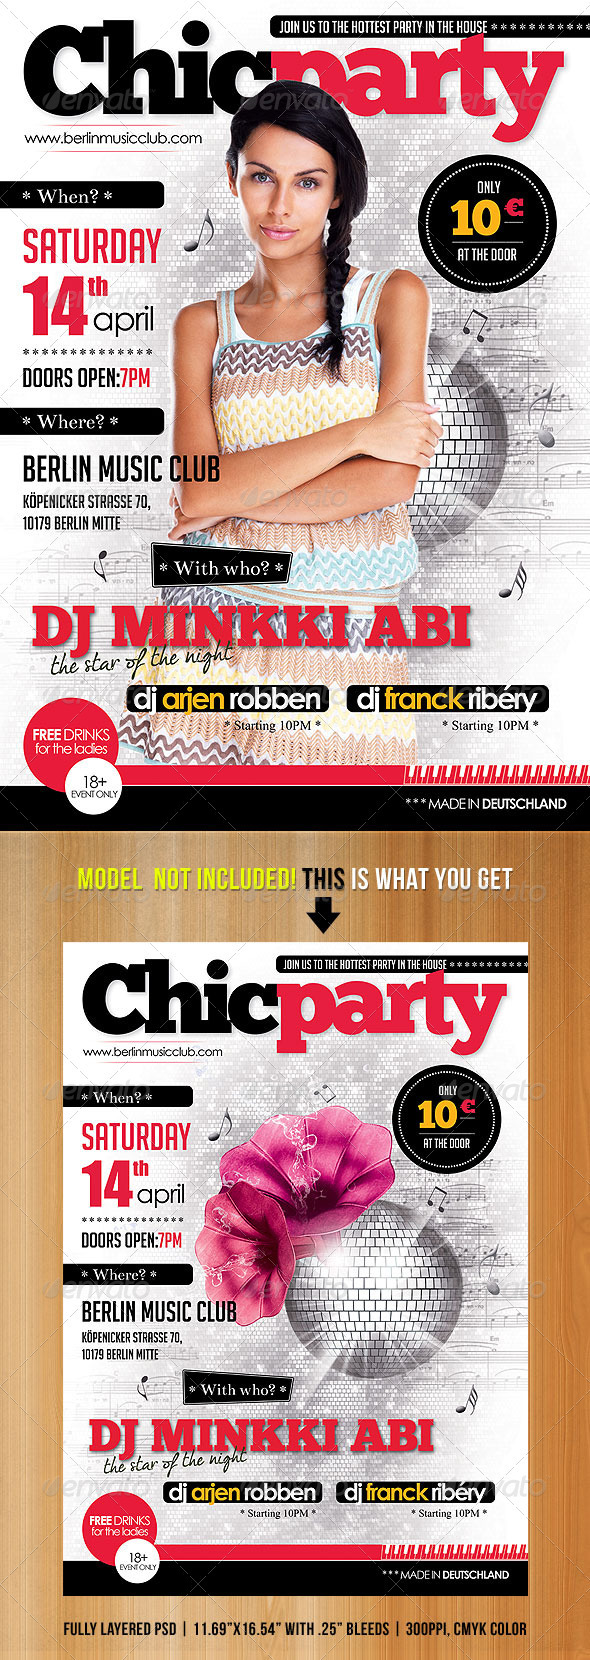 A3 Chic Party Magazine Poster/Flyer - Flyers Print Templates